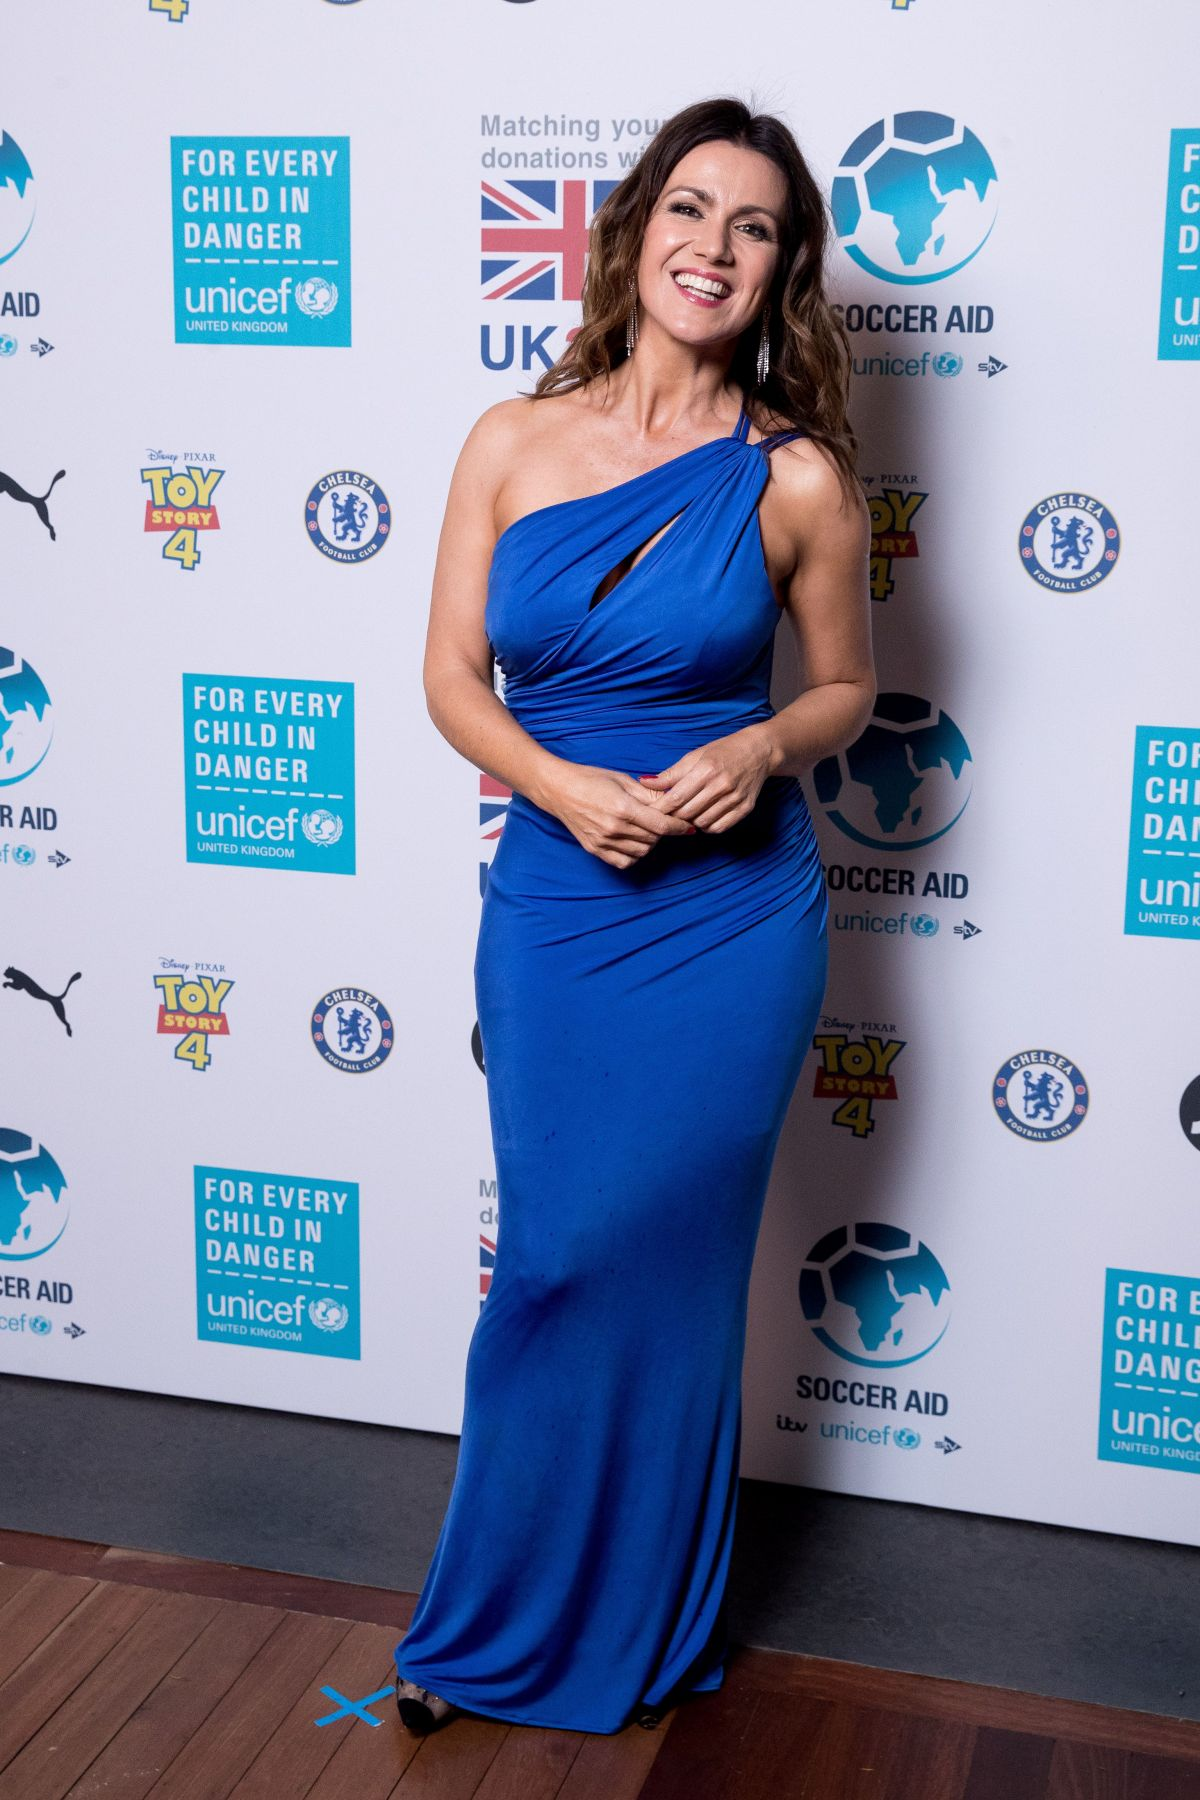 Susanna Reid At Soccer Aid For Unicef Gala Science Museum